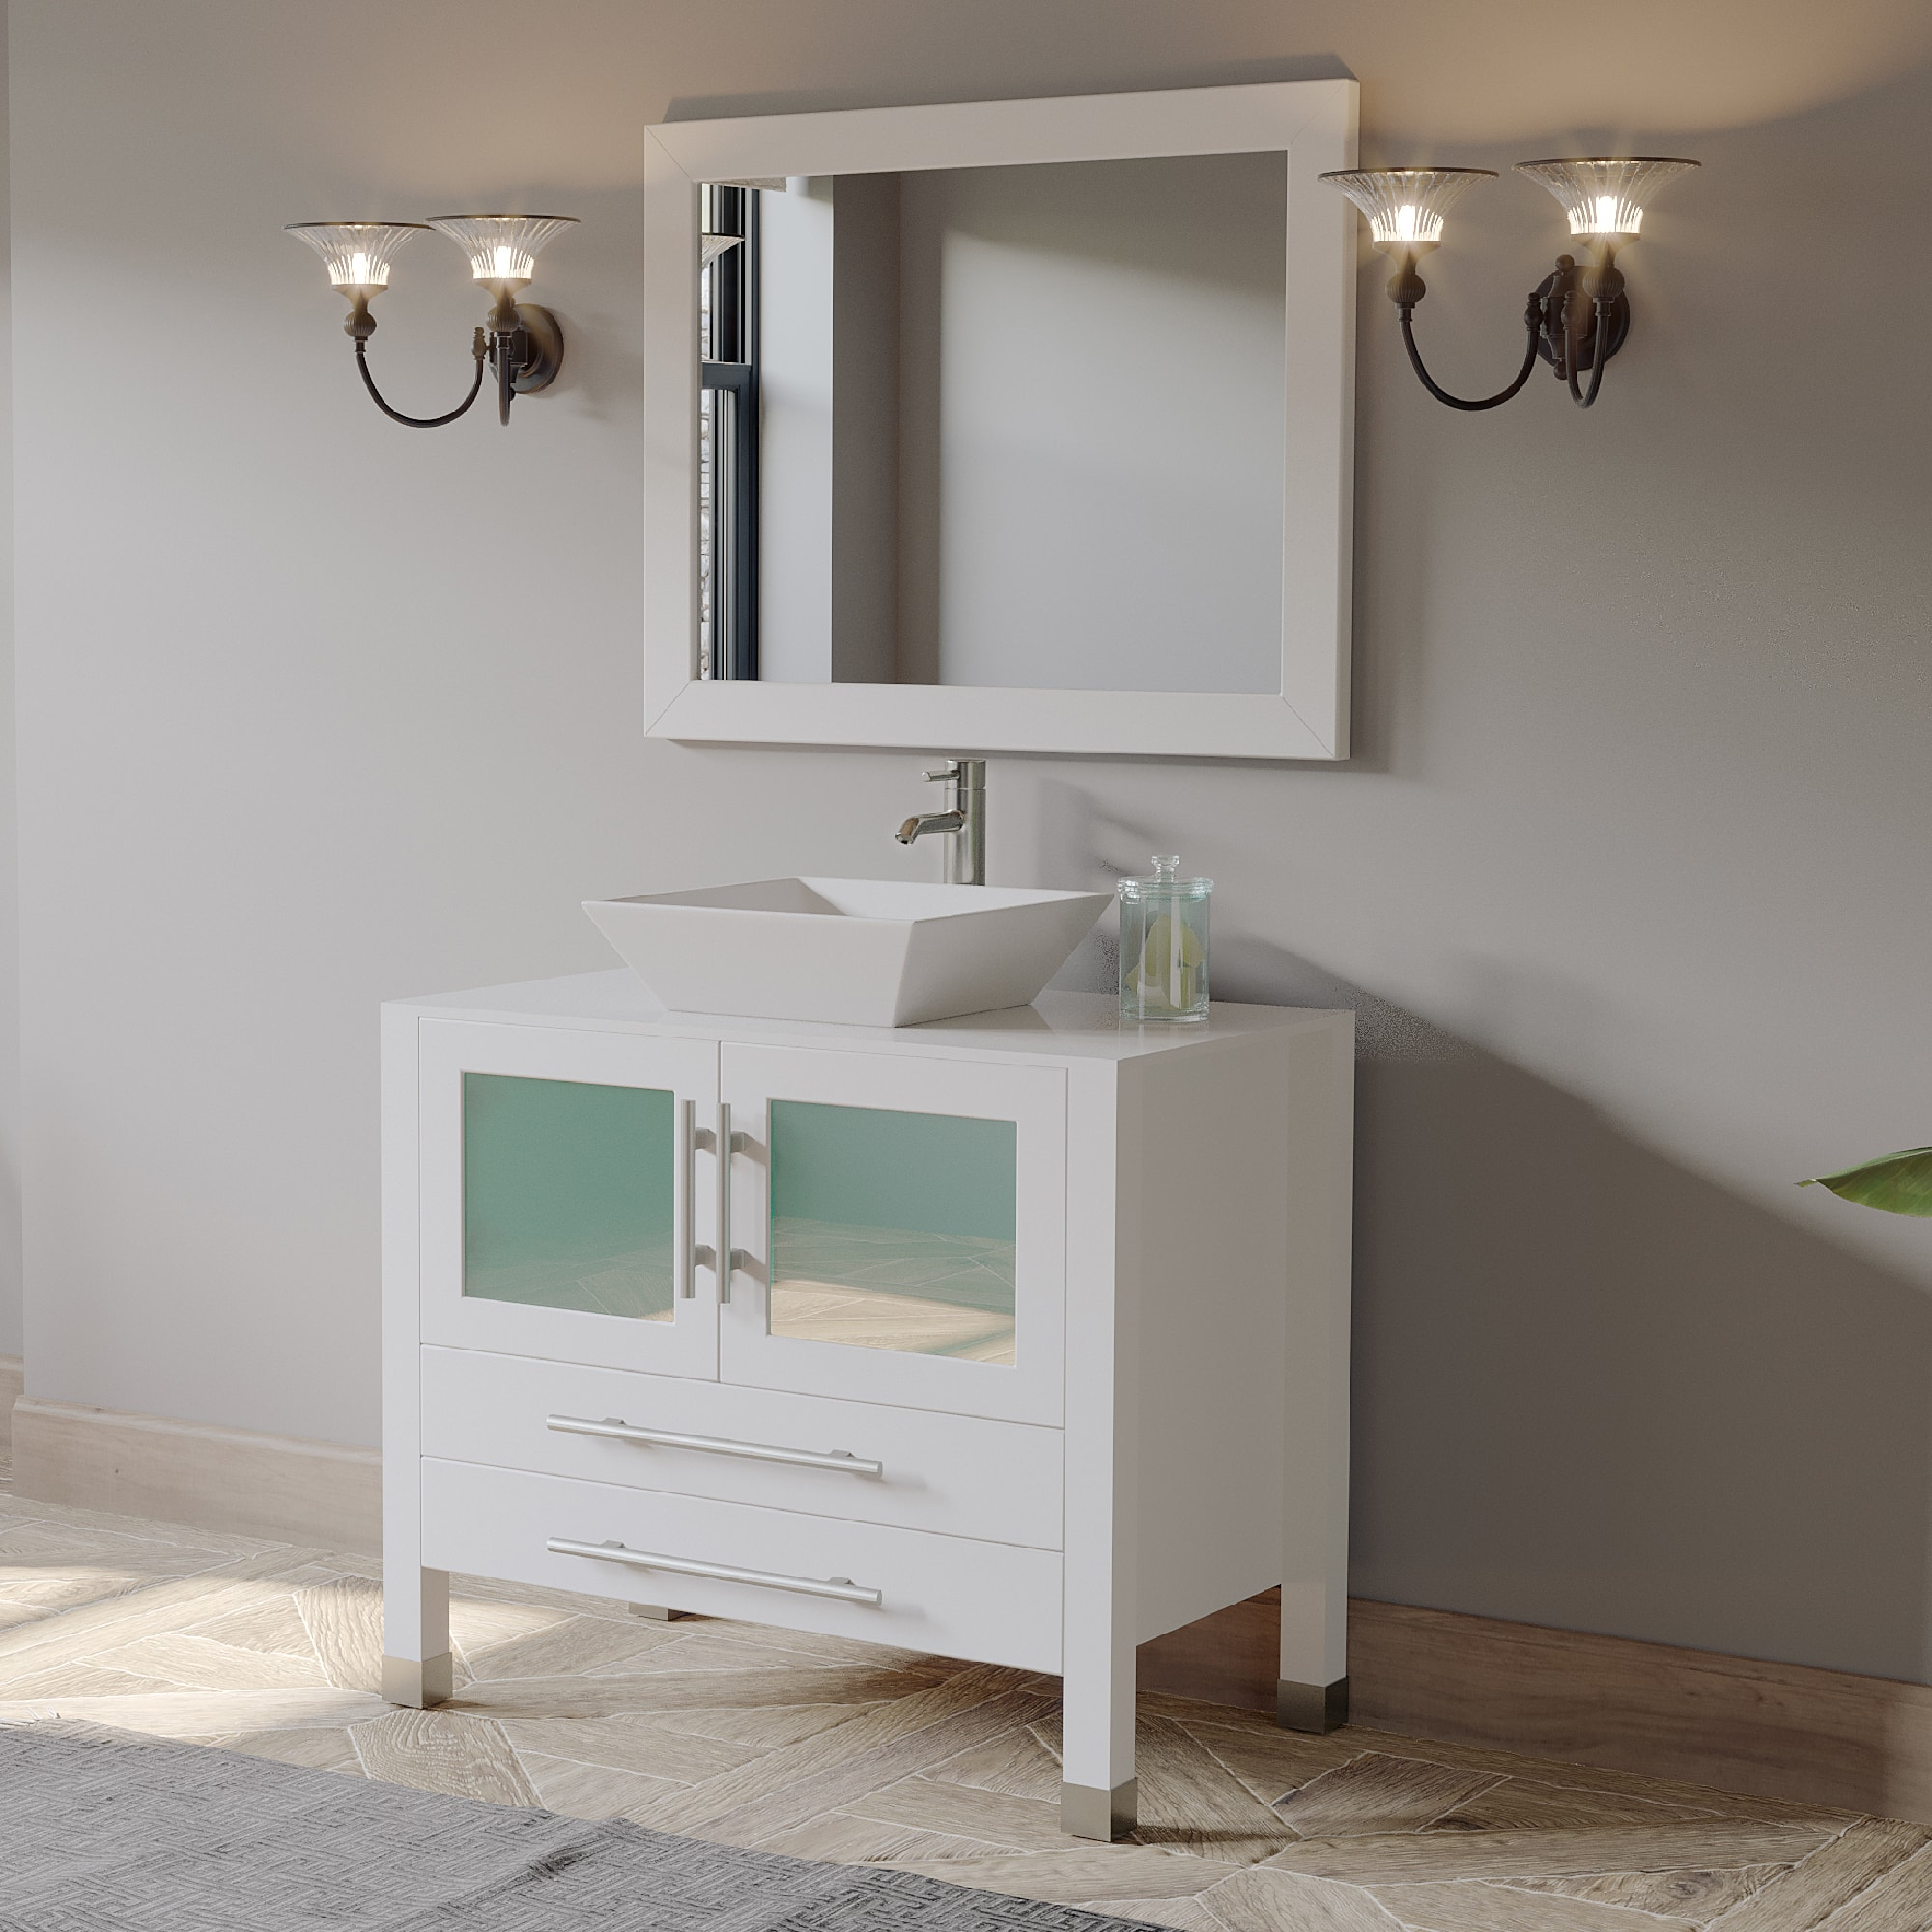 Moveable Solid Wood Ceramic Buffet Kitchen Sink Cabinet: 36 Inch White Wood And Porcelain Vessel Sink Vanity Set